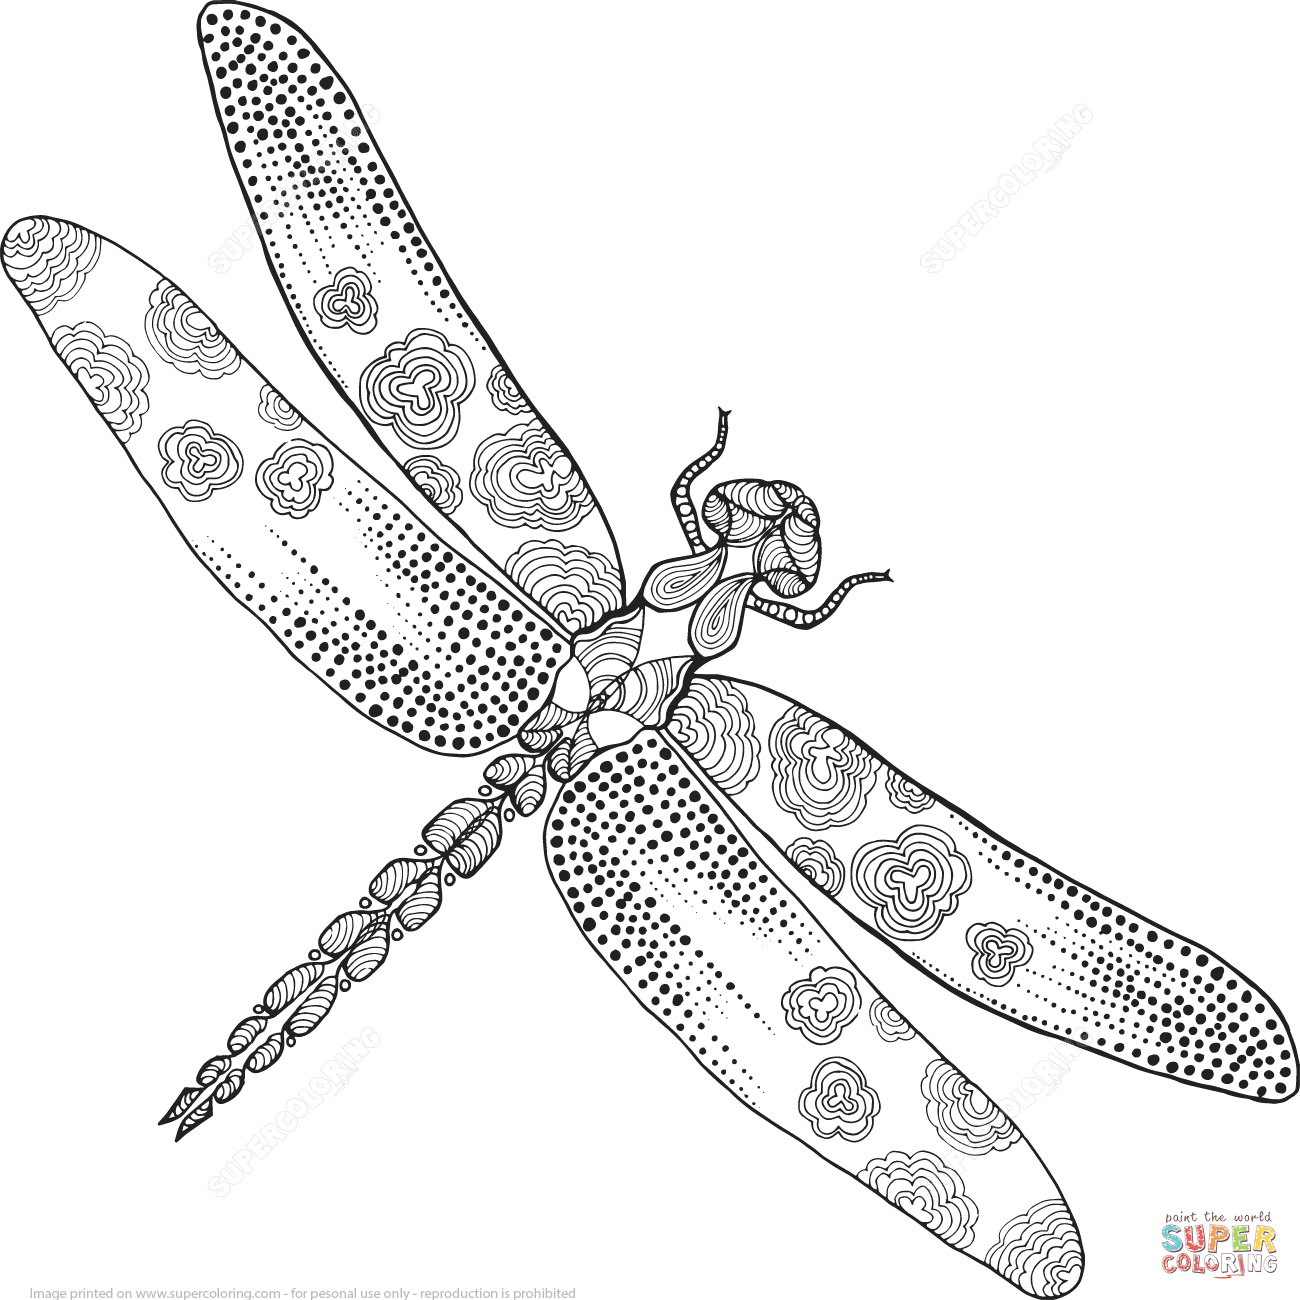 Zentangle Dragonfly Coloring Page | Free Printable Coloring Pages - Free Printable Pictures Of Dragonflies